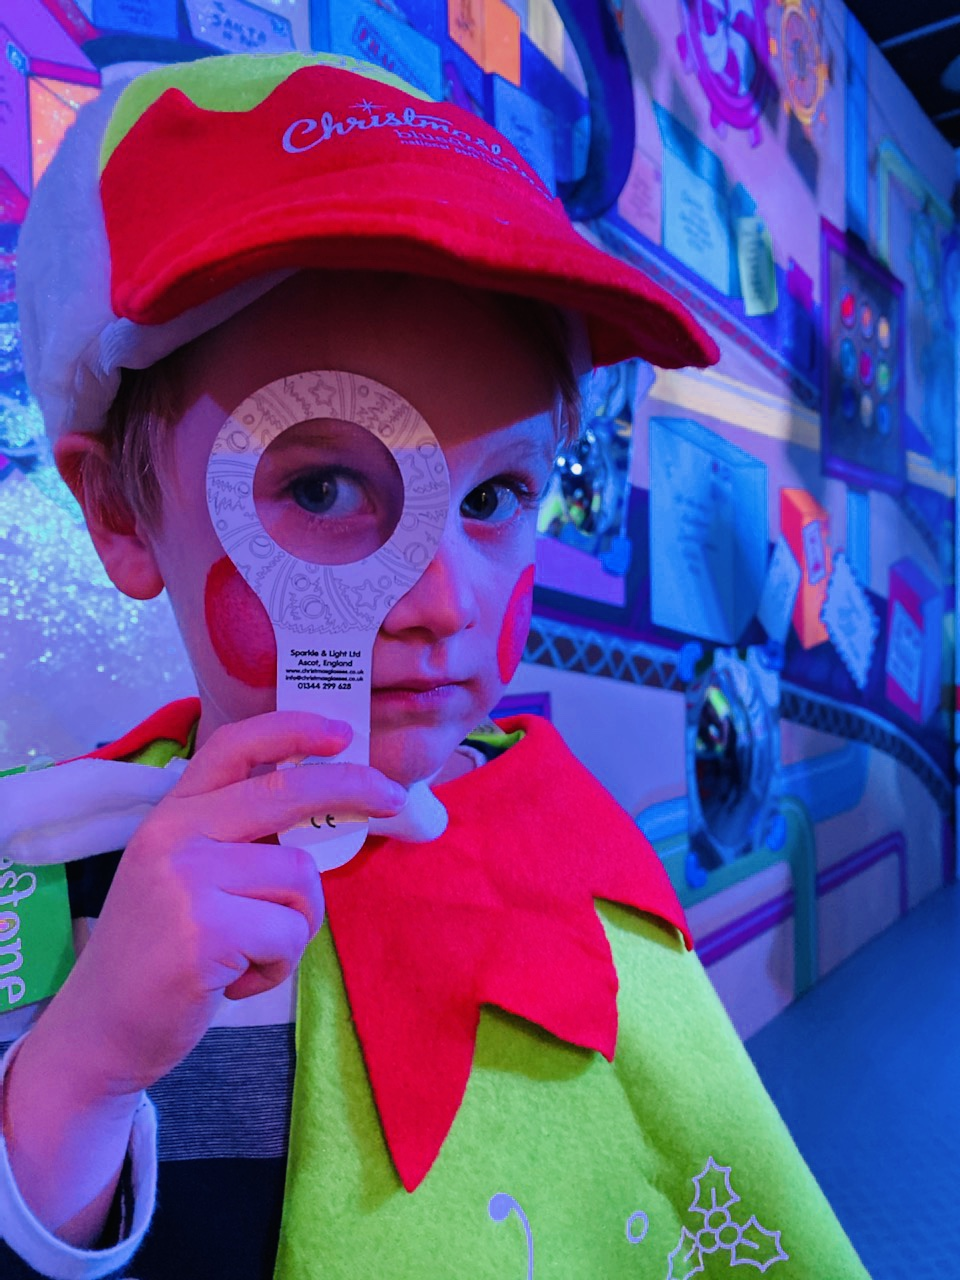 Little boy dressed as an elf with a magnifying glass at Christmasland